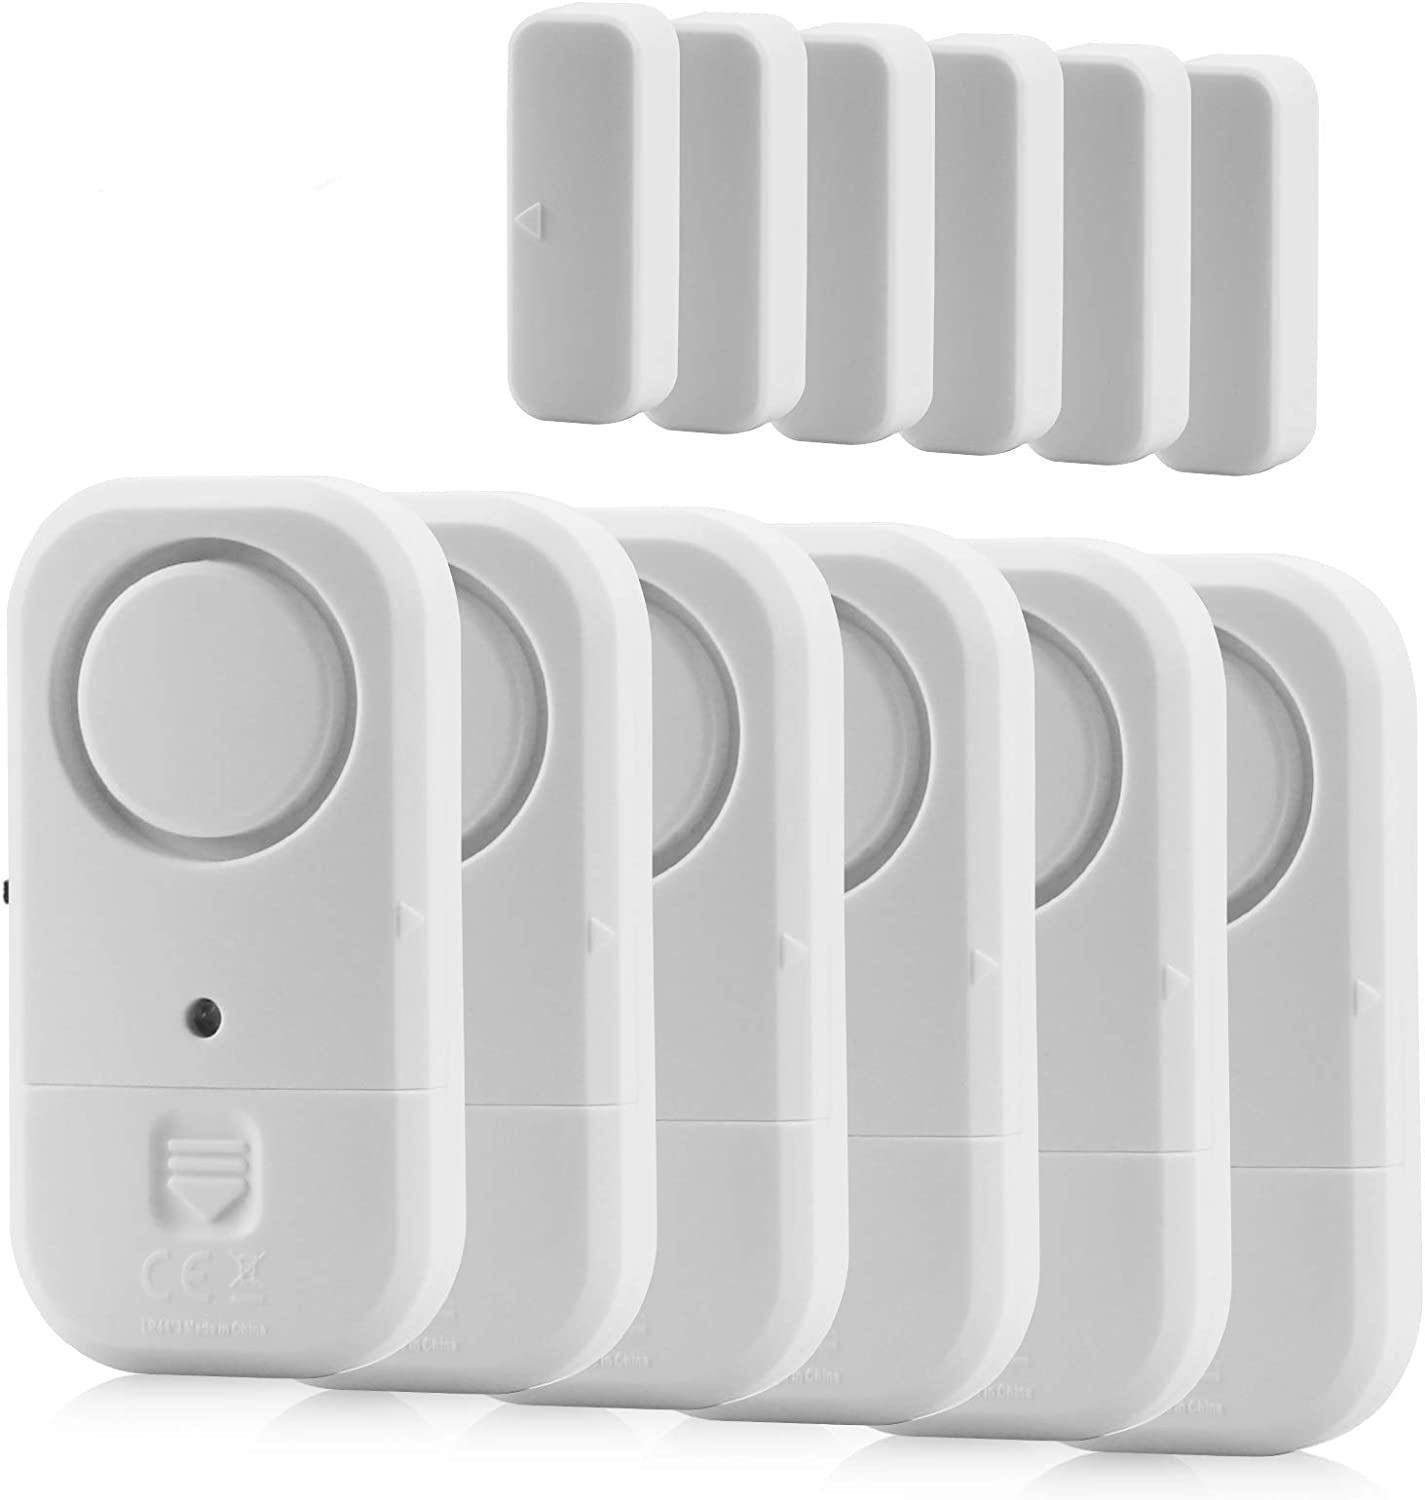 Window Alarms for Home, Toeeson 120 DB Pool Alarms for Door, 2020 Newest White Magnet Sensor Security Alarms